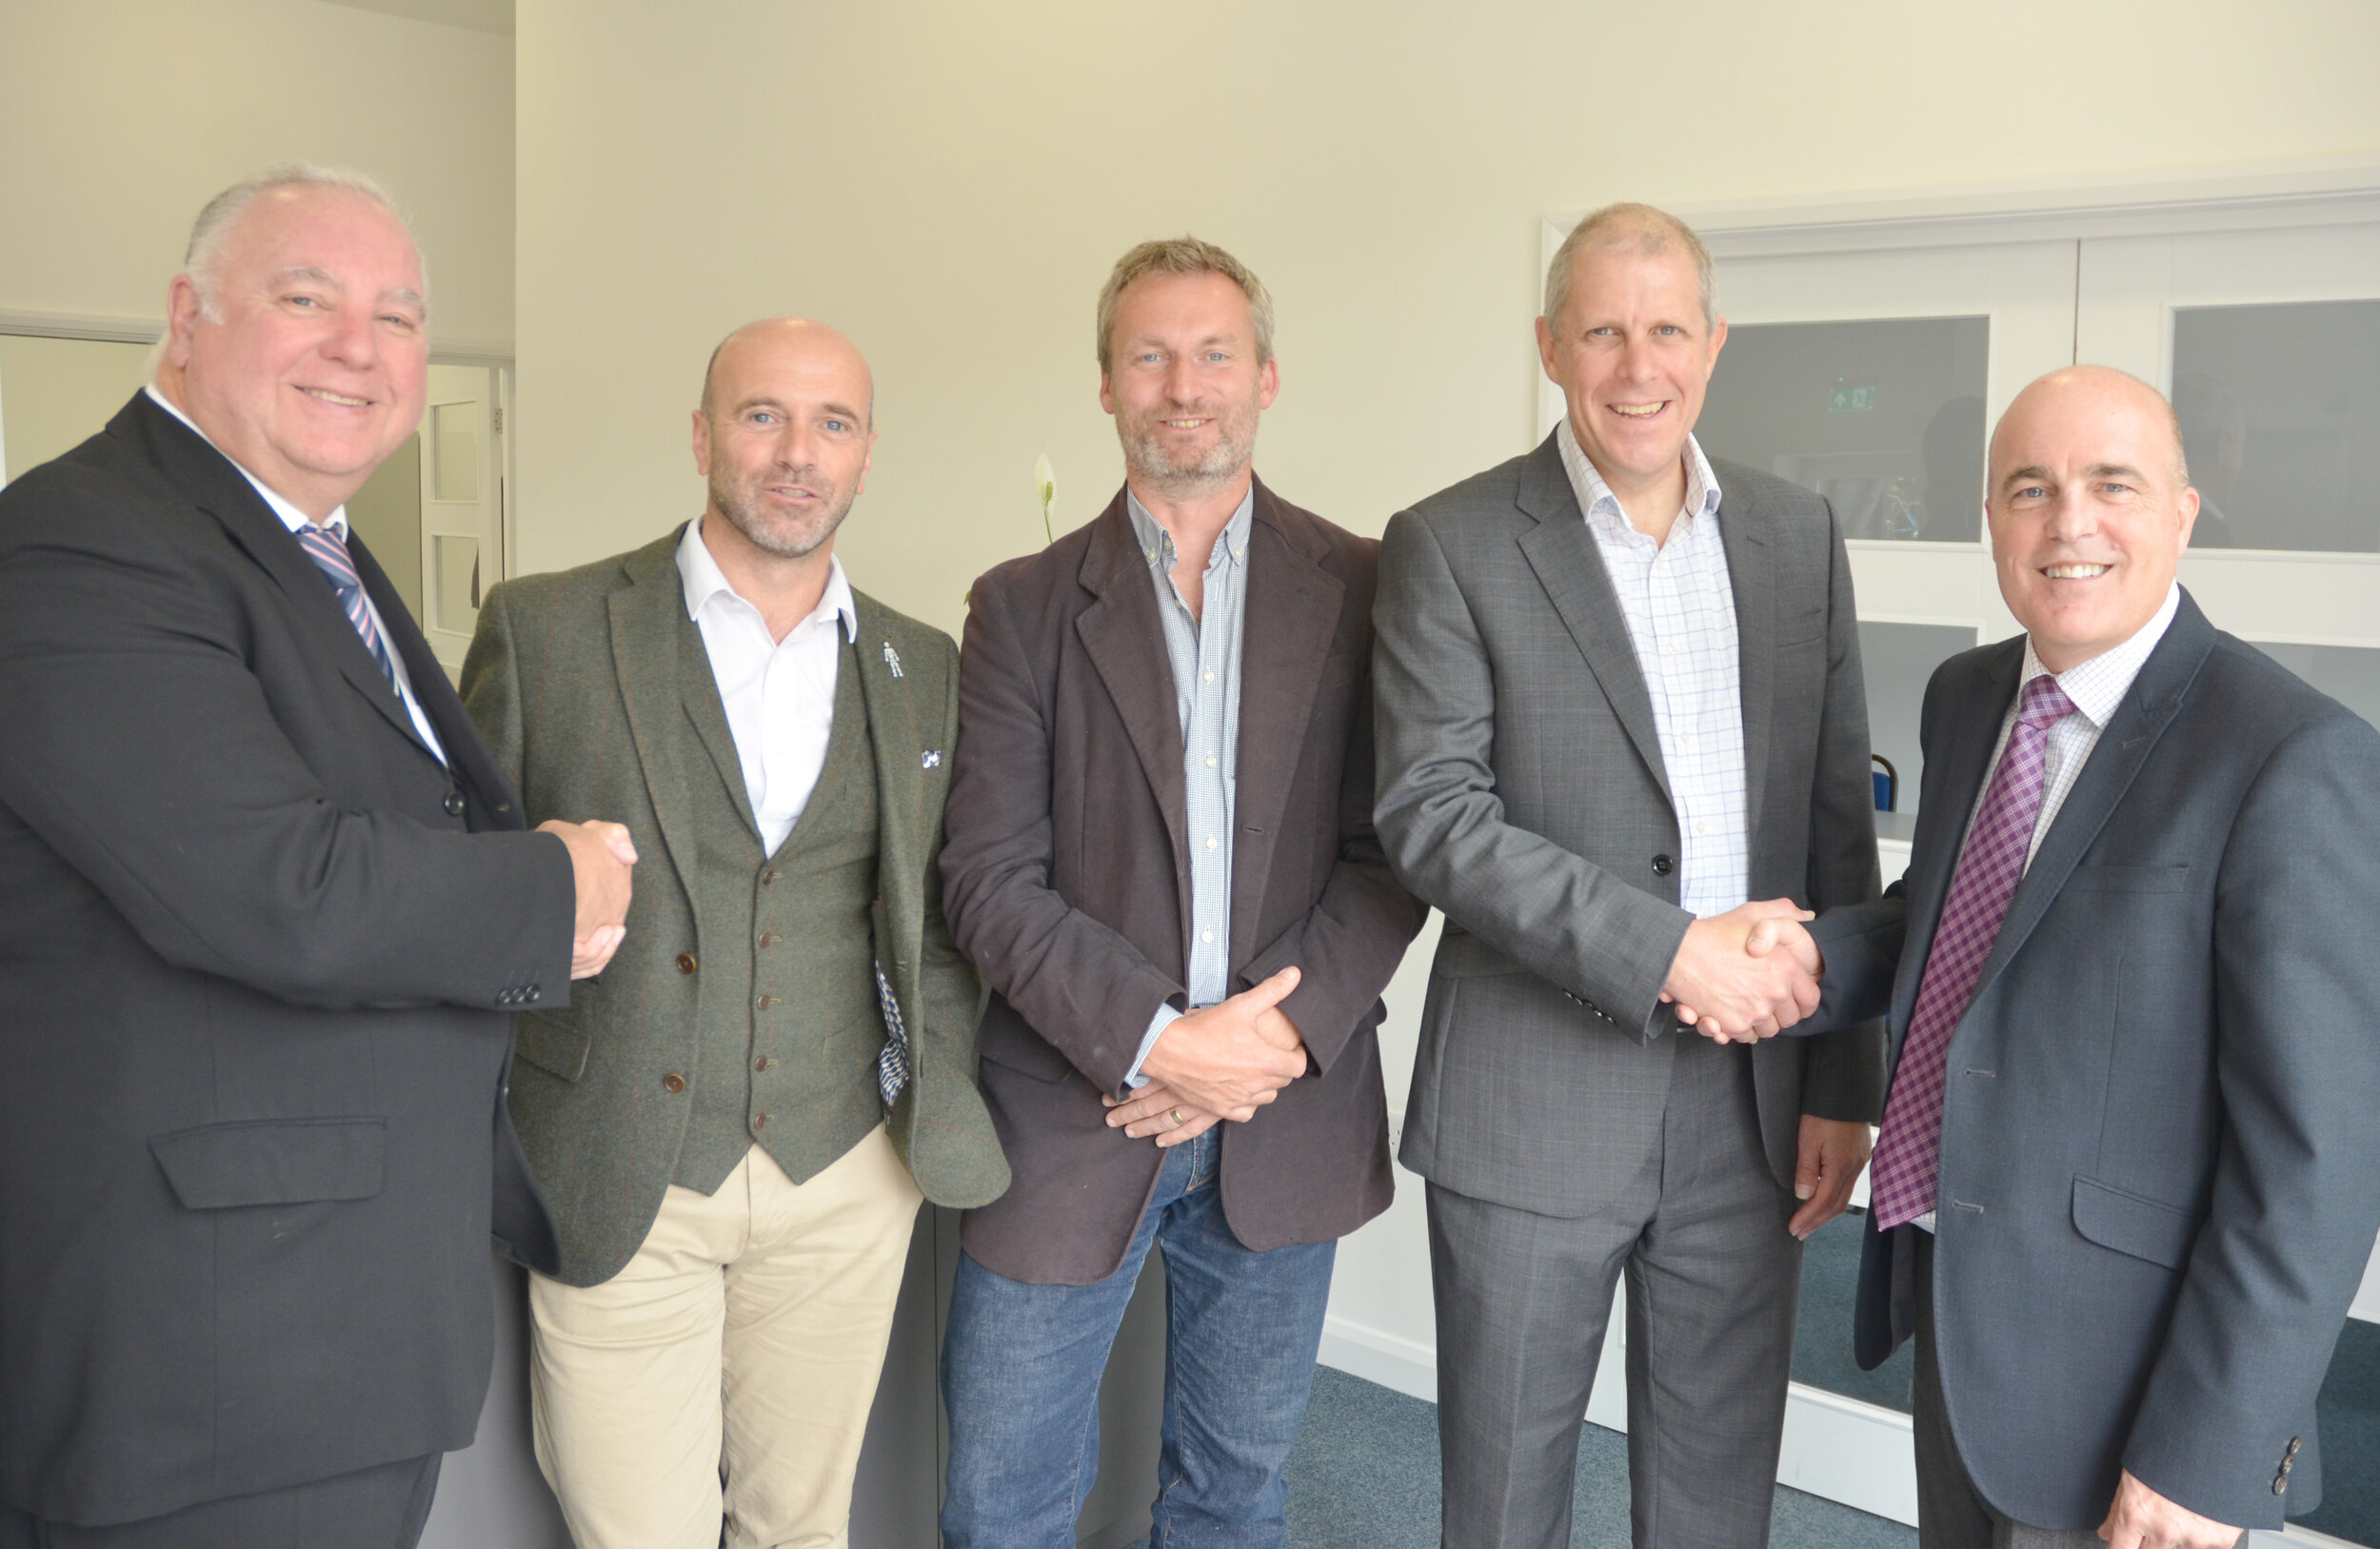 (From Left) Bill Brown, Brian Morton, Alastair Craig, Patrick Fisher and Nick Groves